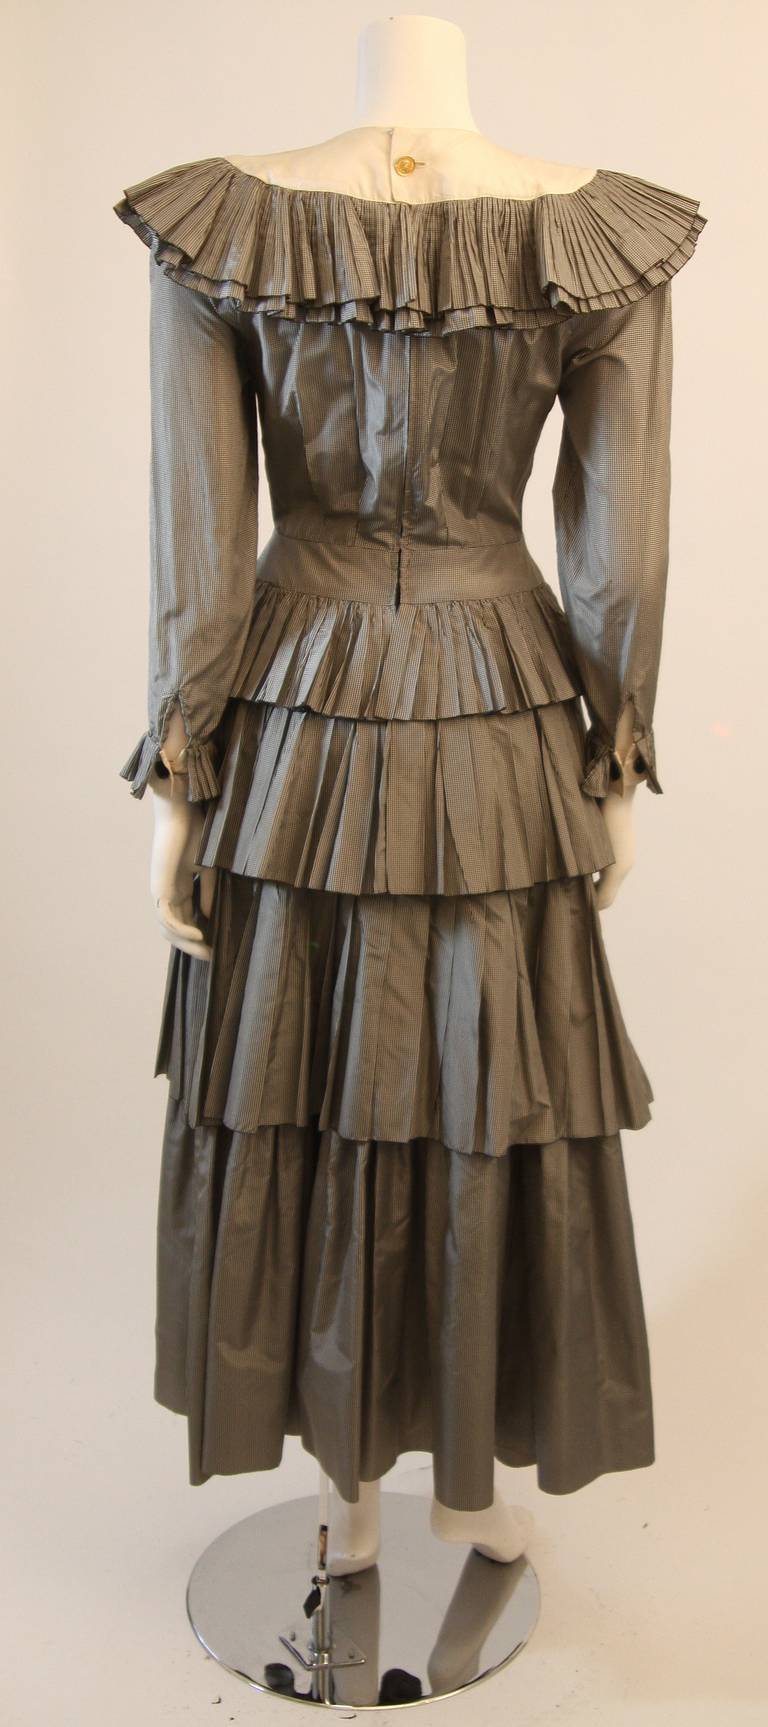 Chanel Edwardian Tiered Ruffle Gingham Gown with Black Bow 9